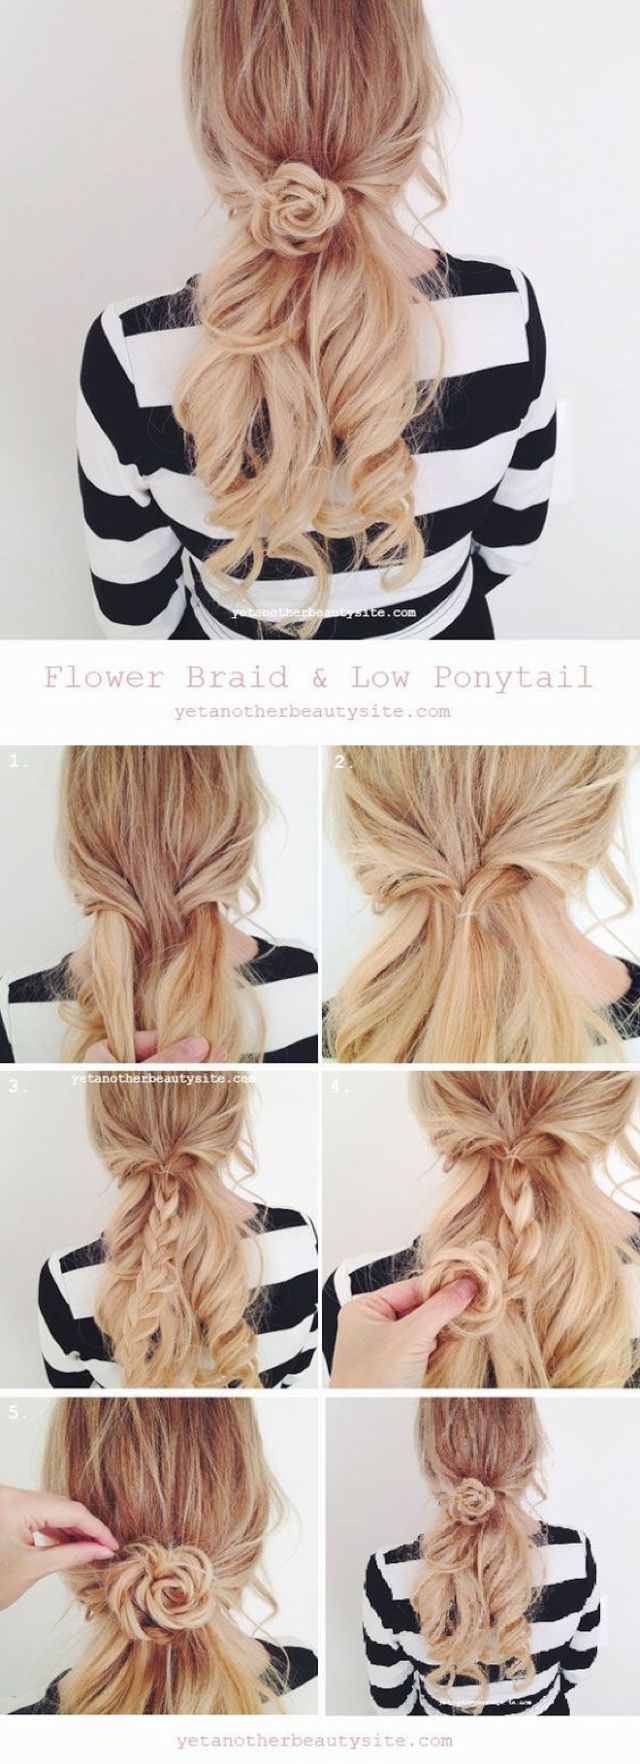 Easy hairstyles ideas the rose braid video the rose braid looks